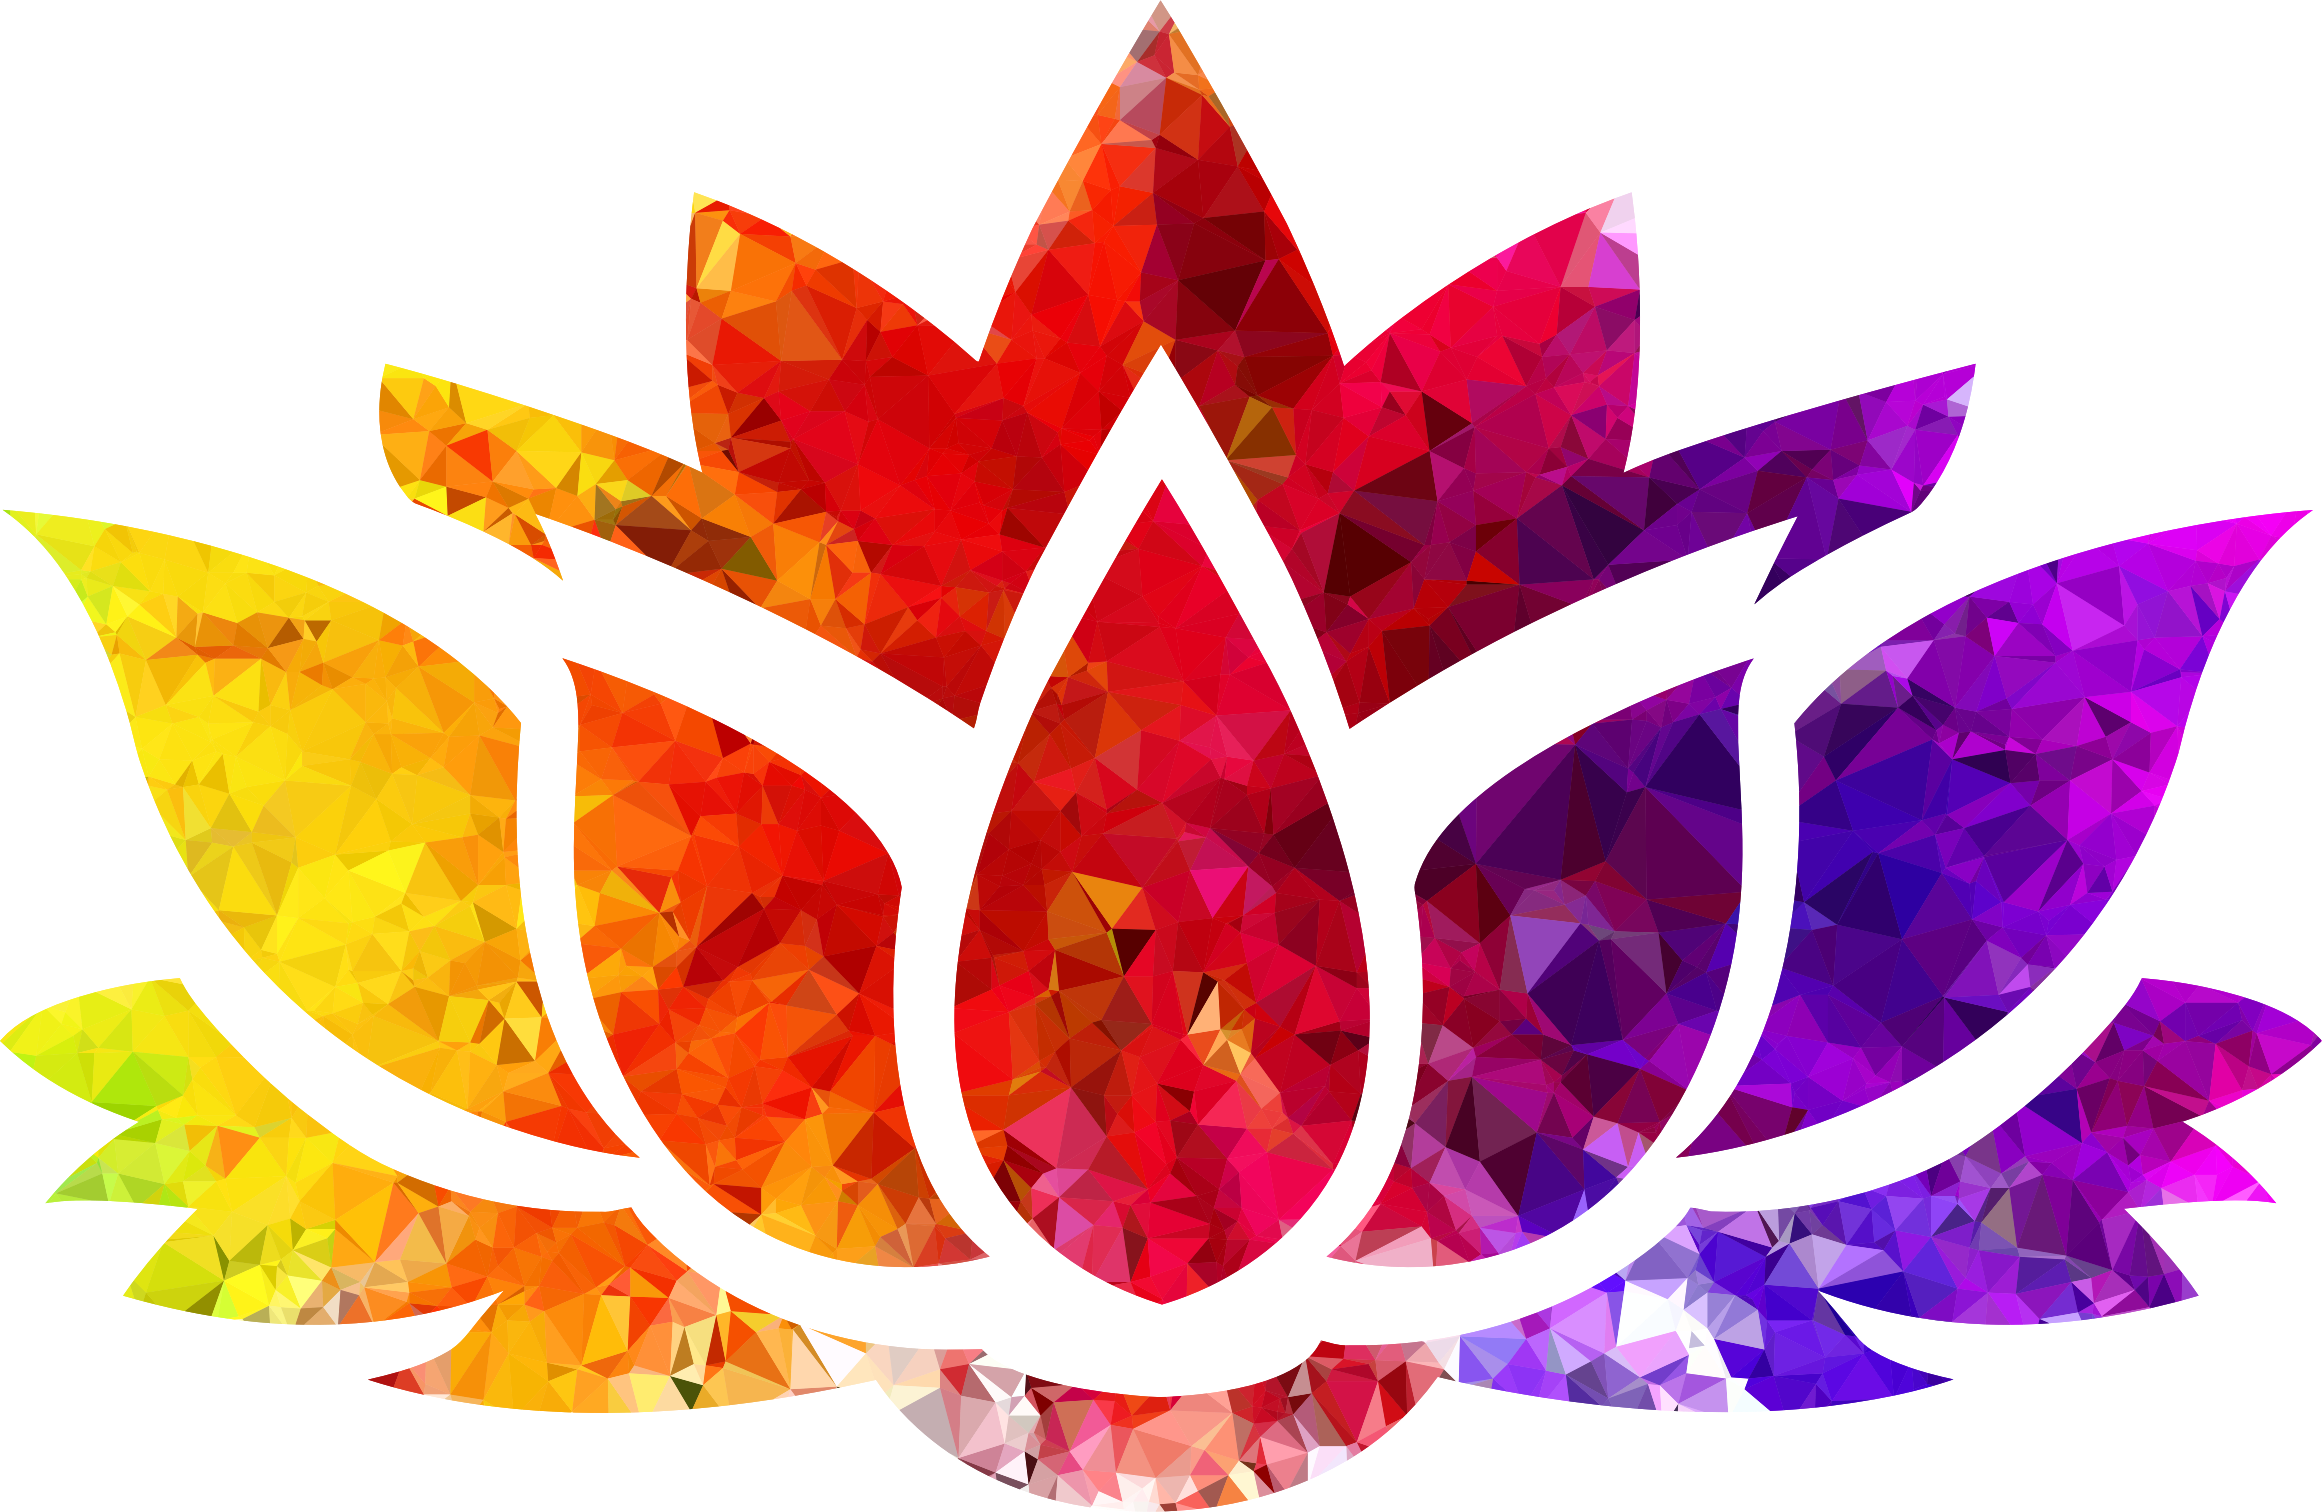 Lotus flower clipart free clipart royalty free Free photo: Lotus Flower - Peace, Oval, Petals - Free Download - Jooinn clipart royalty free